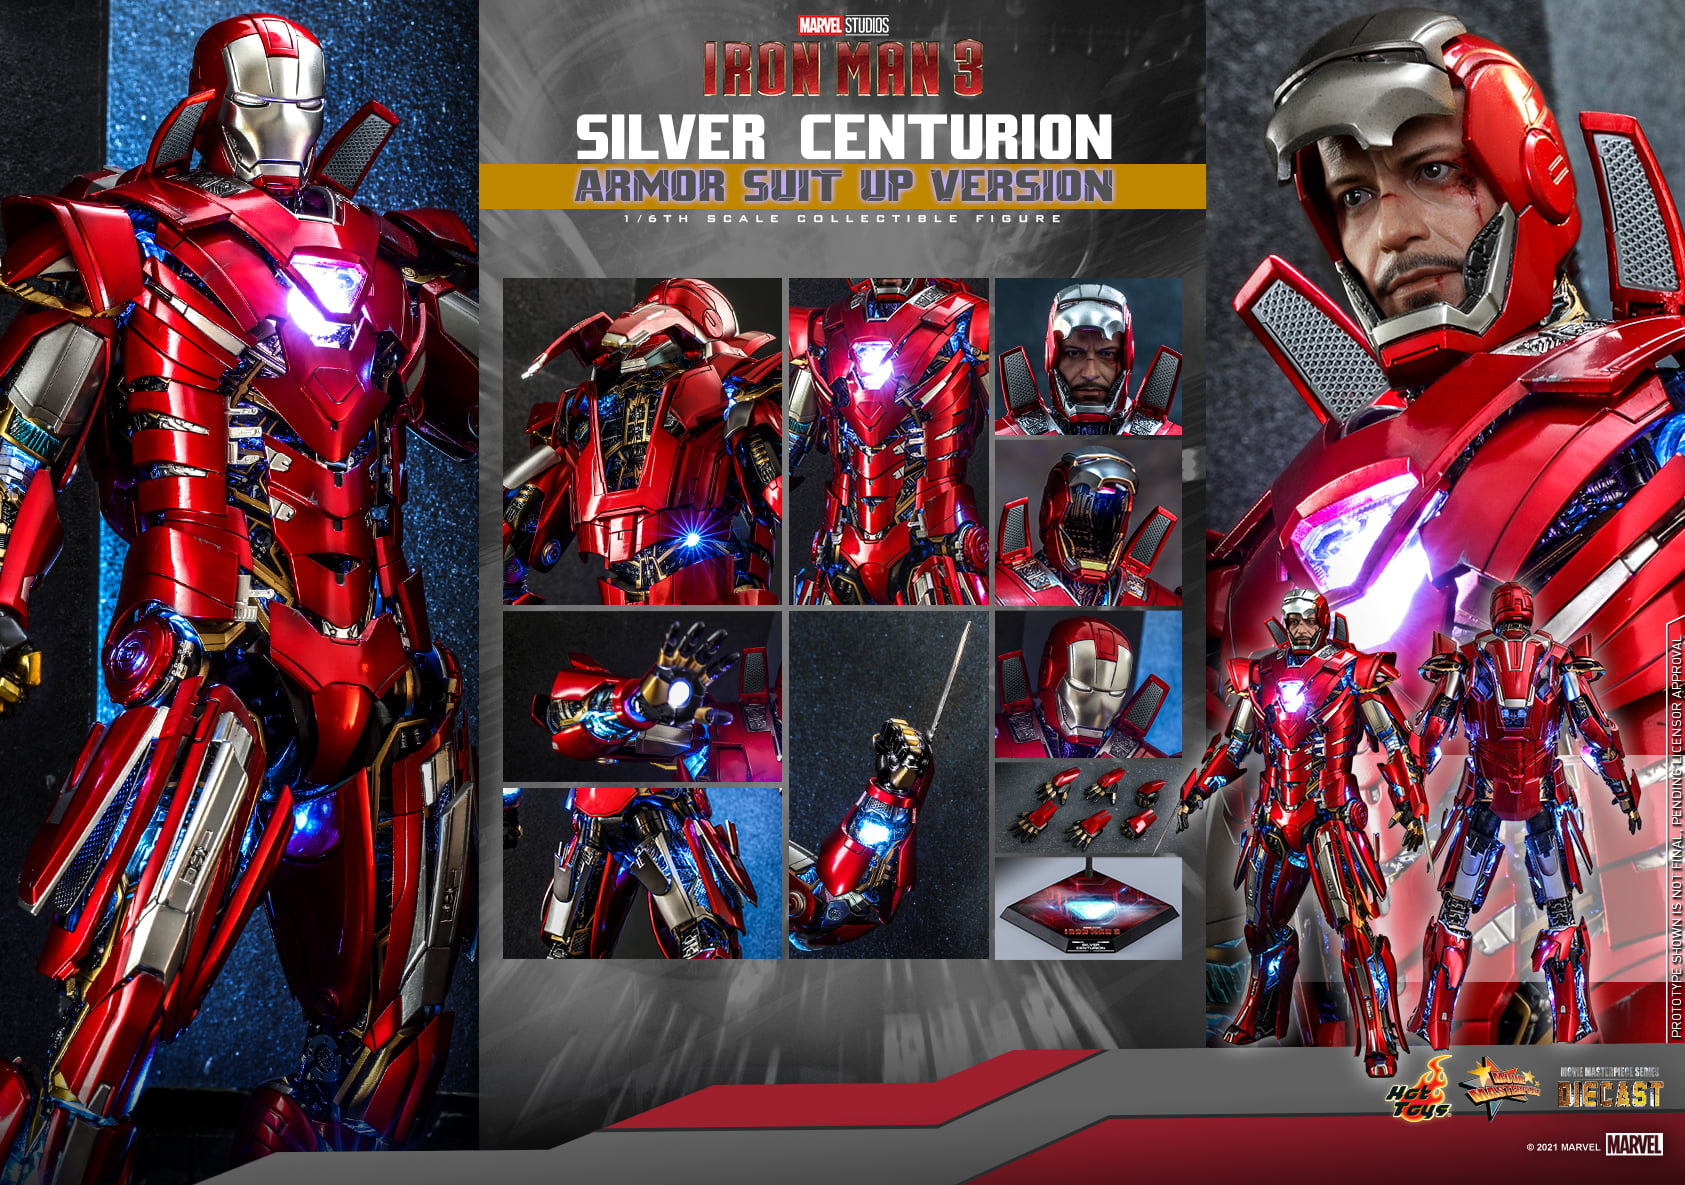 Hot Toys Silver Centurion (Armor Suit Up Version) Sixth Scale Figure Pre-Orders